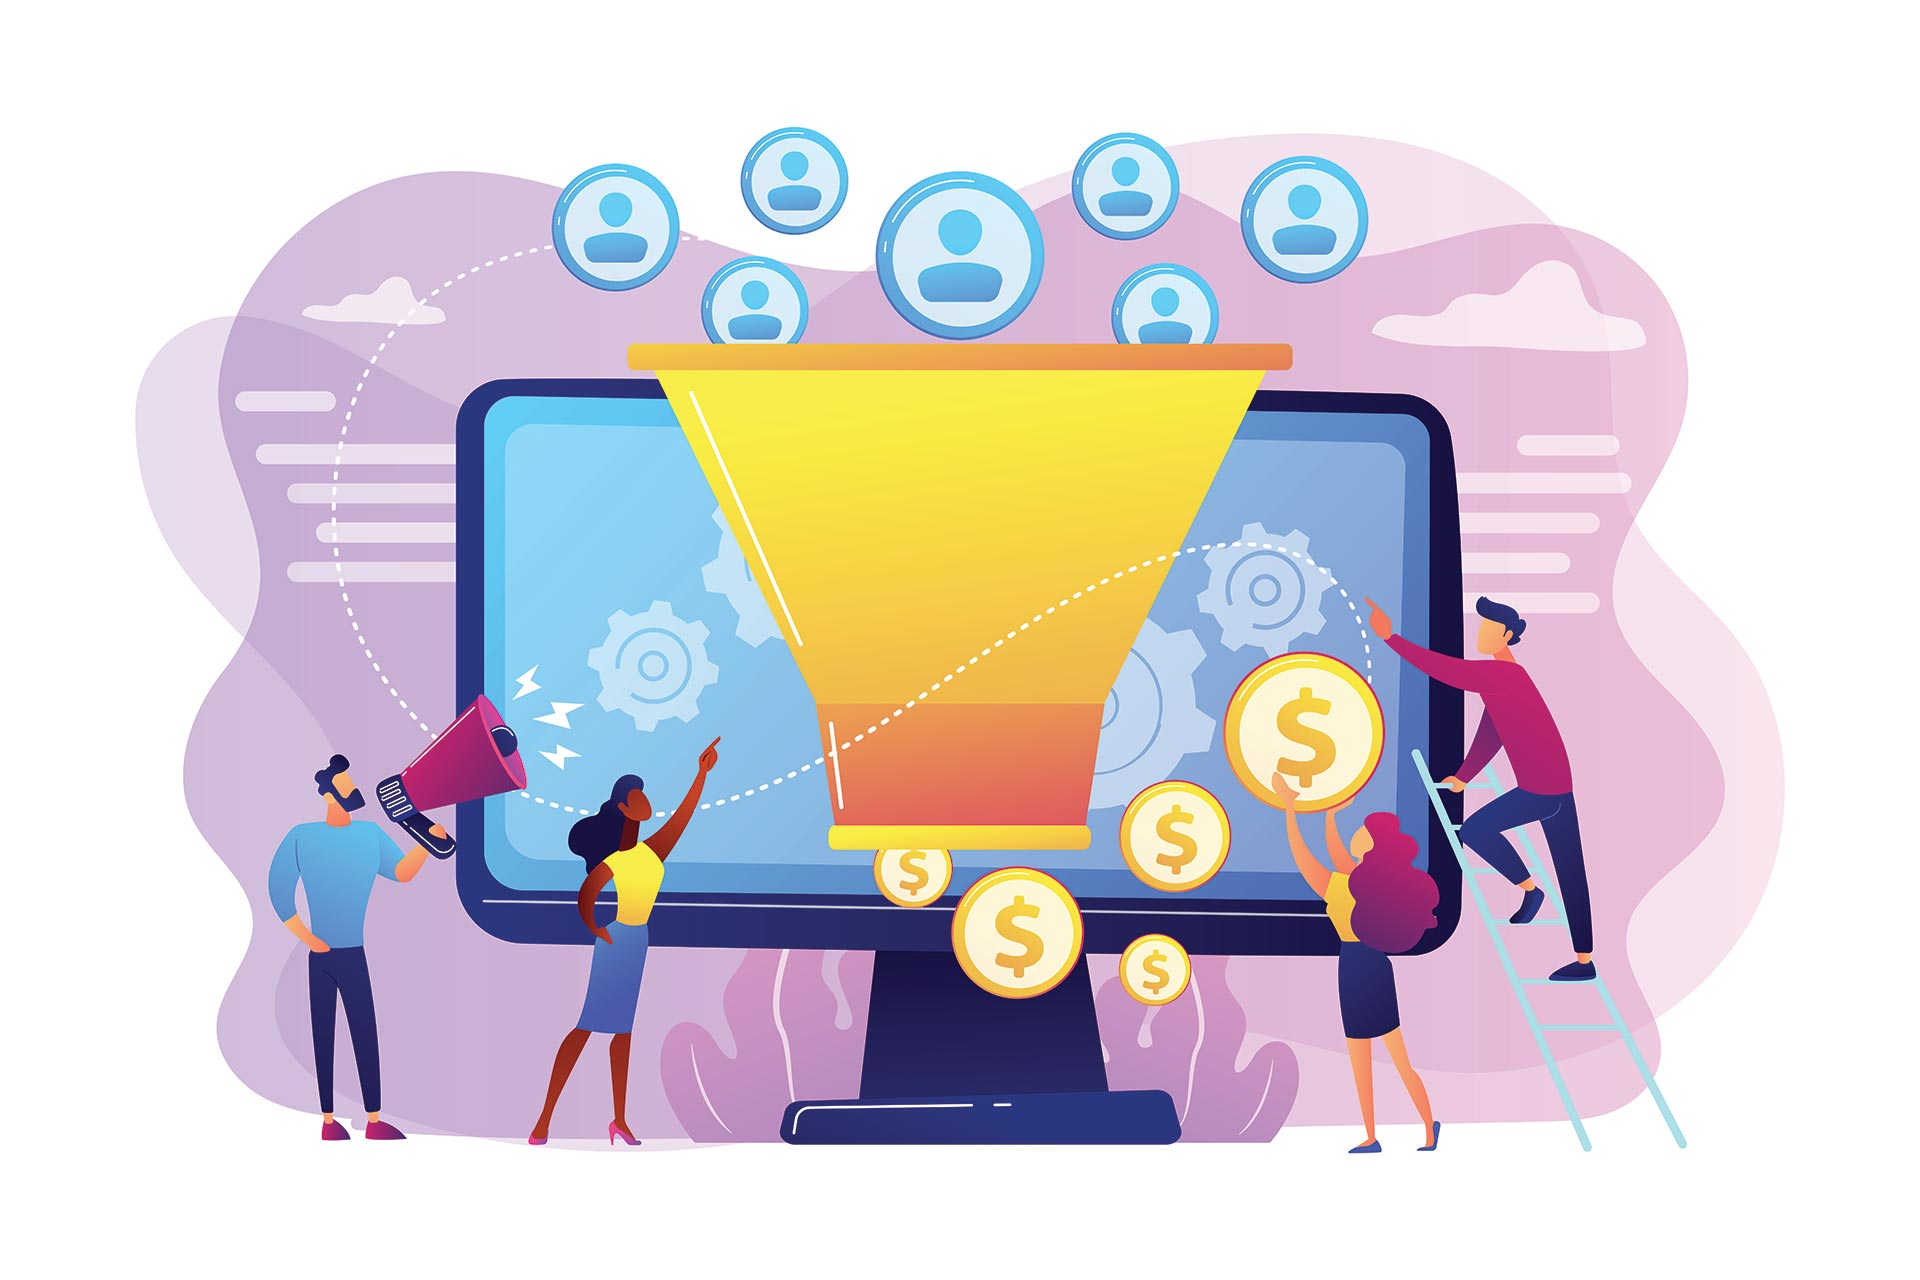 Illustration of people around a computer screen showing a funnel with users coming in the top and money out the bottom